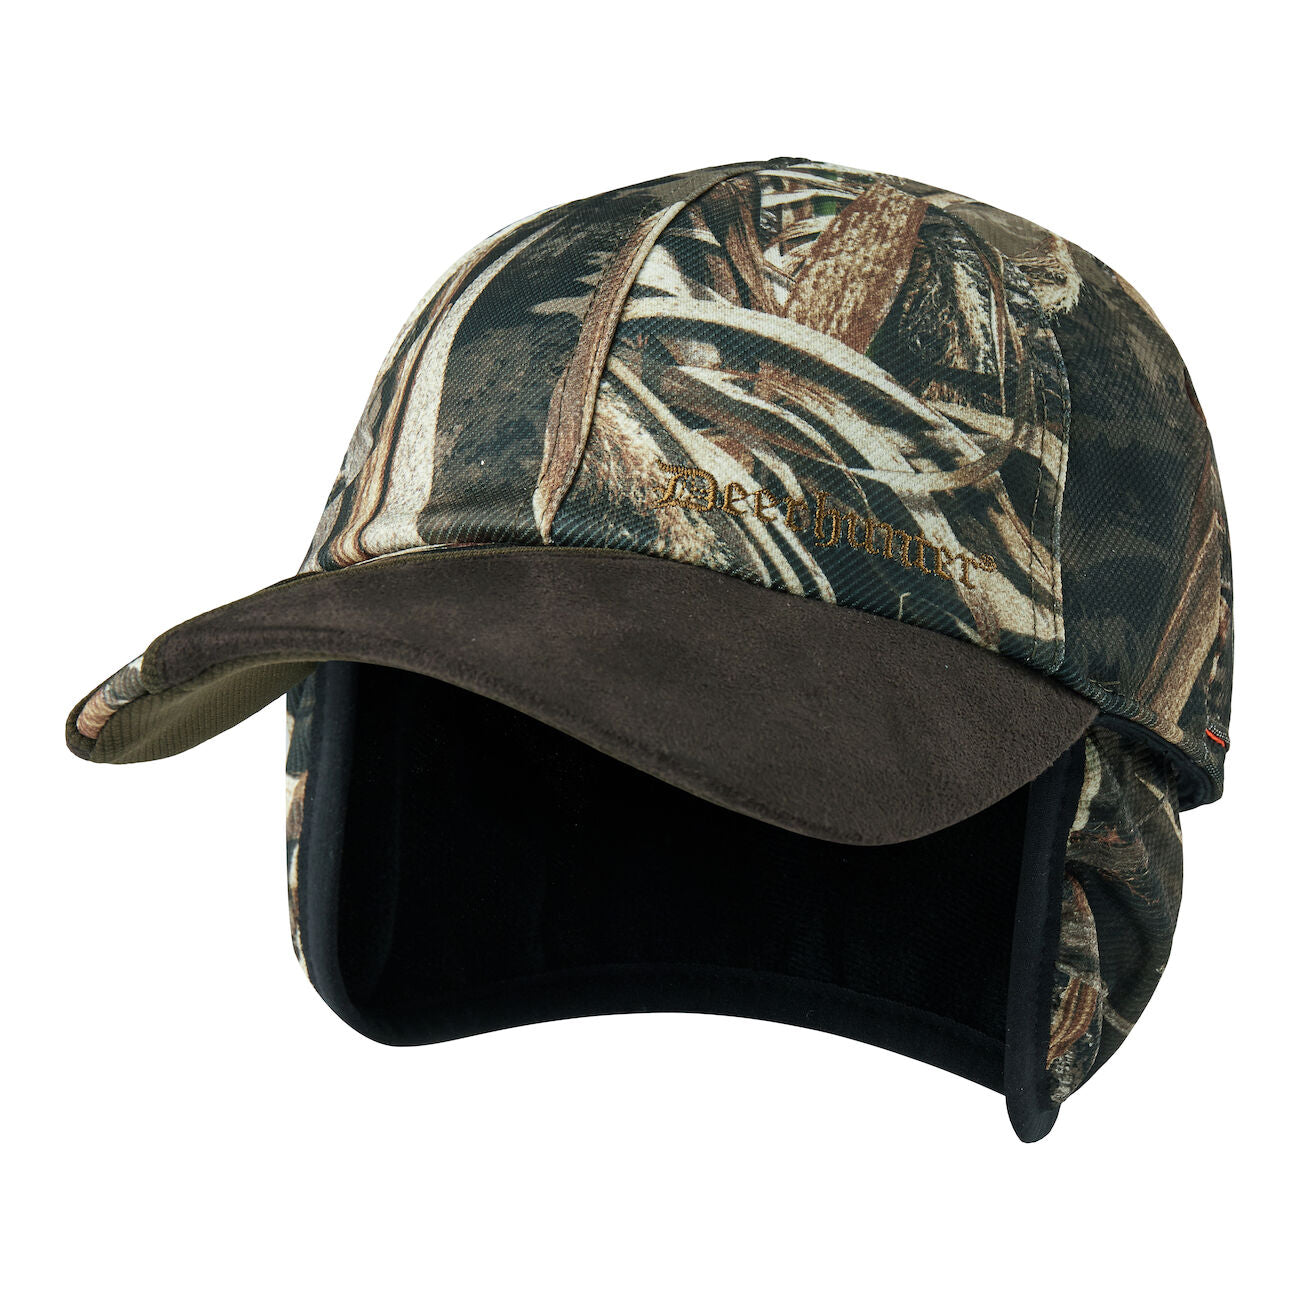 Deerhunter Muflon Cap with safety - Realtree Max